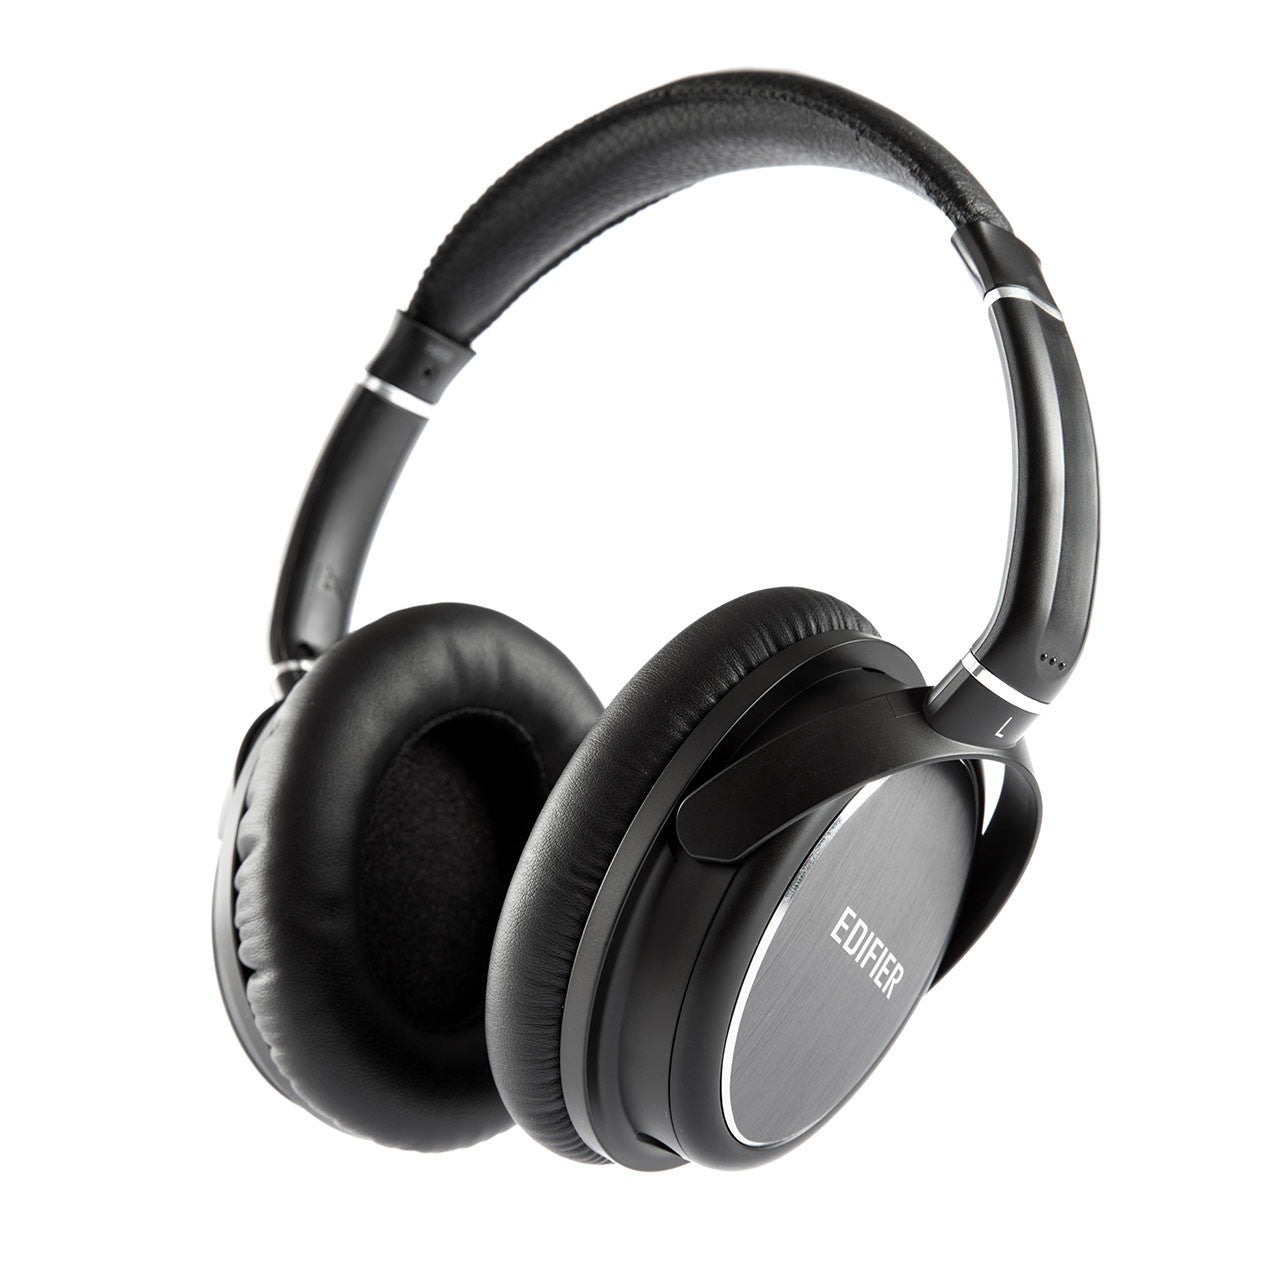 Edifier H850 Over-the-ear Headphones - Professional Bass Amp, Electric Guitar, Instrument Monitor and Recording